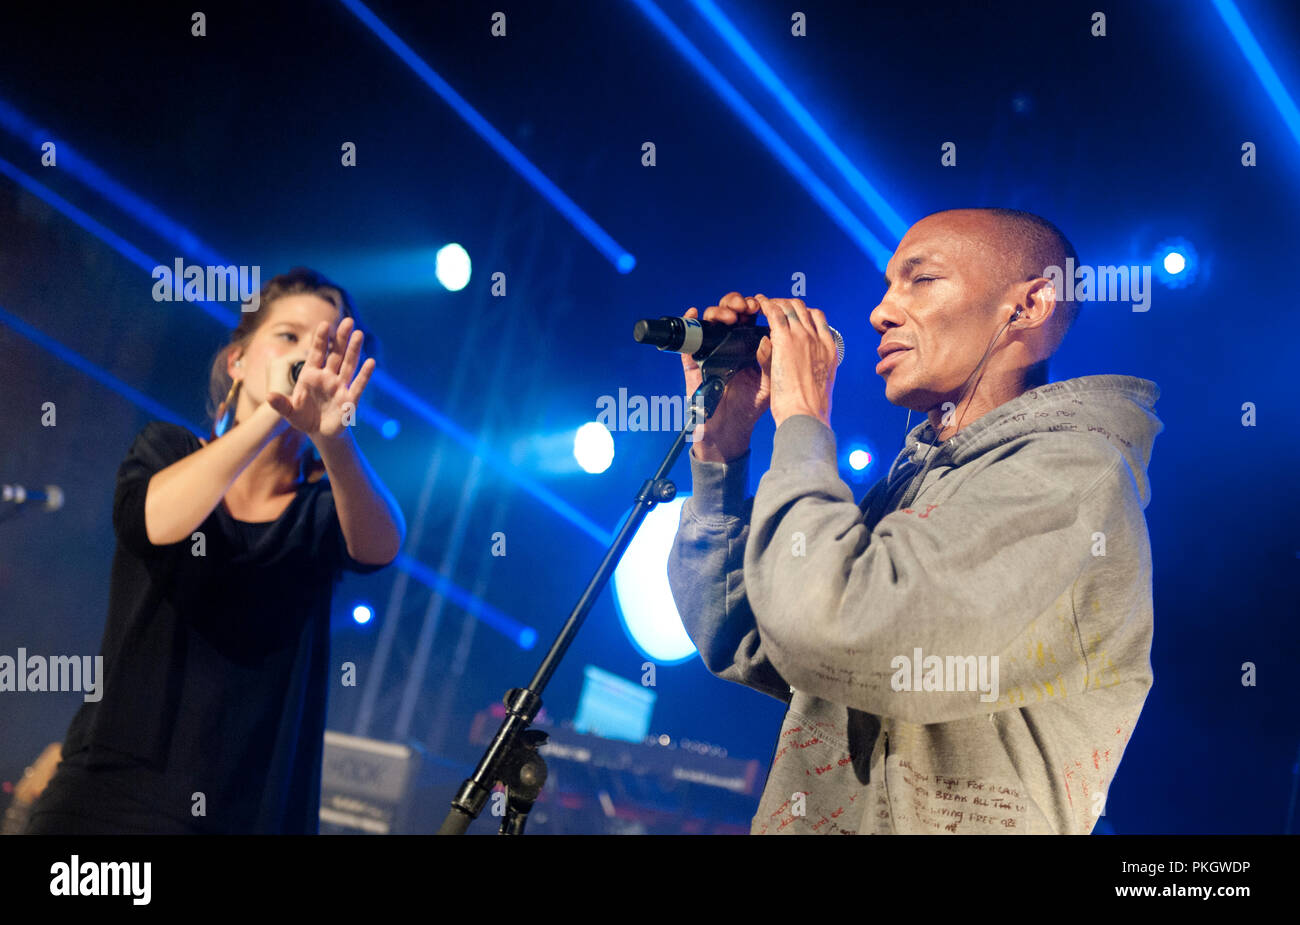 English producer and vocalist Tricky performing with Belgian singer Selah Sue at the Radio 1 Sessies, in Antwerp (Belgium, 18/11/2015) - Stock Image